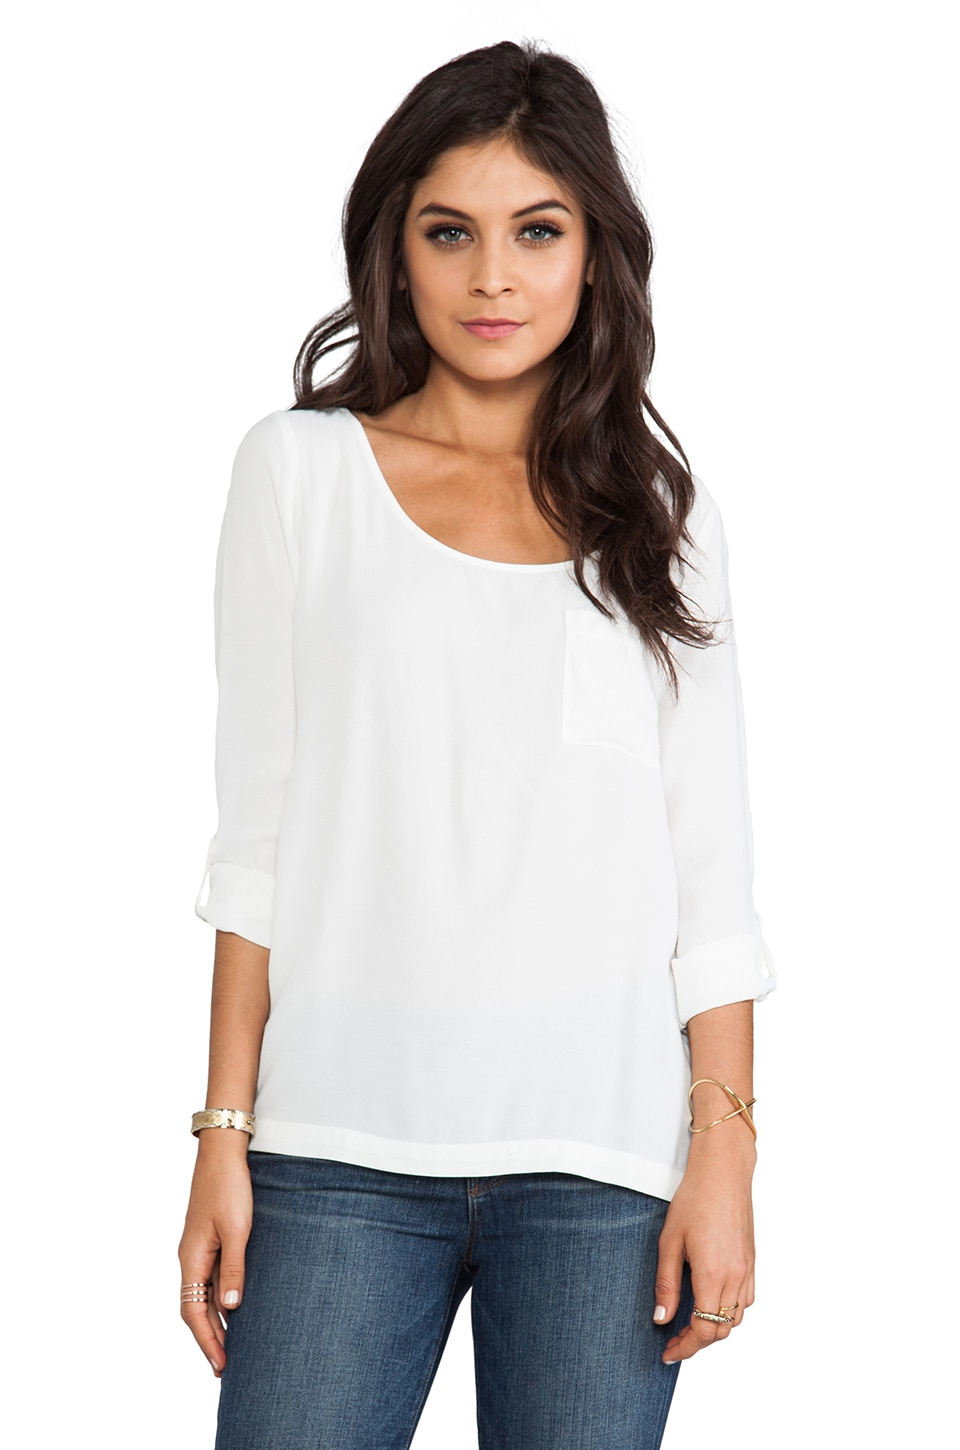 Soft Joie Wyoming Pocket Top in Porcelain